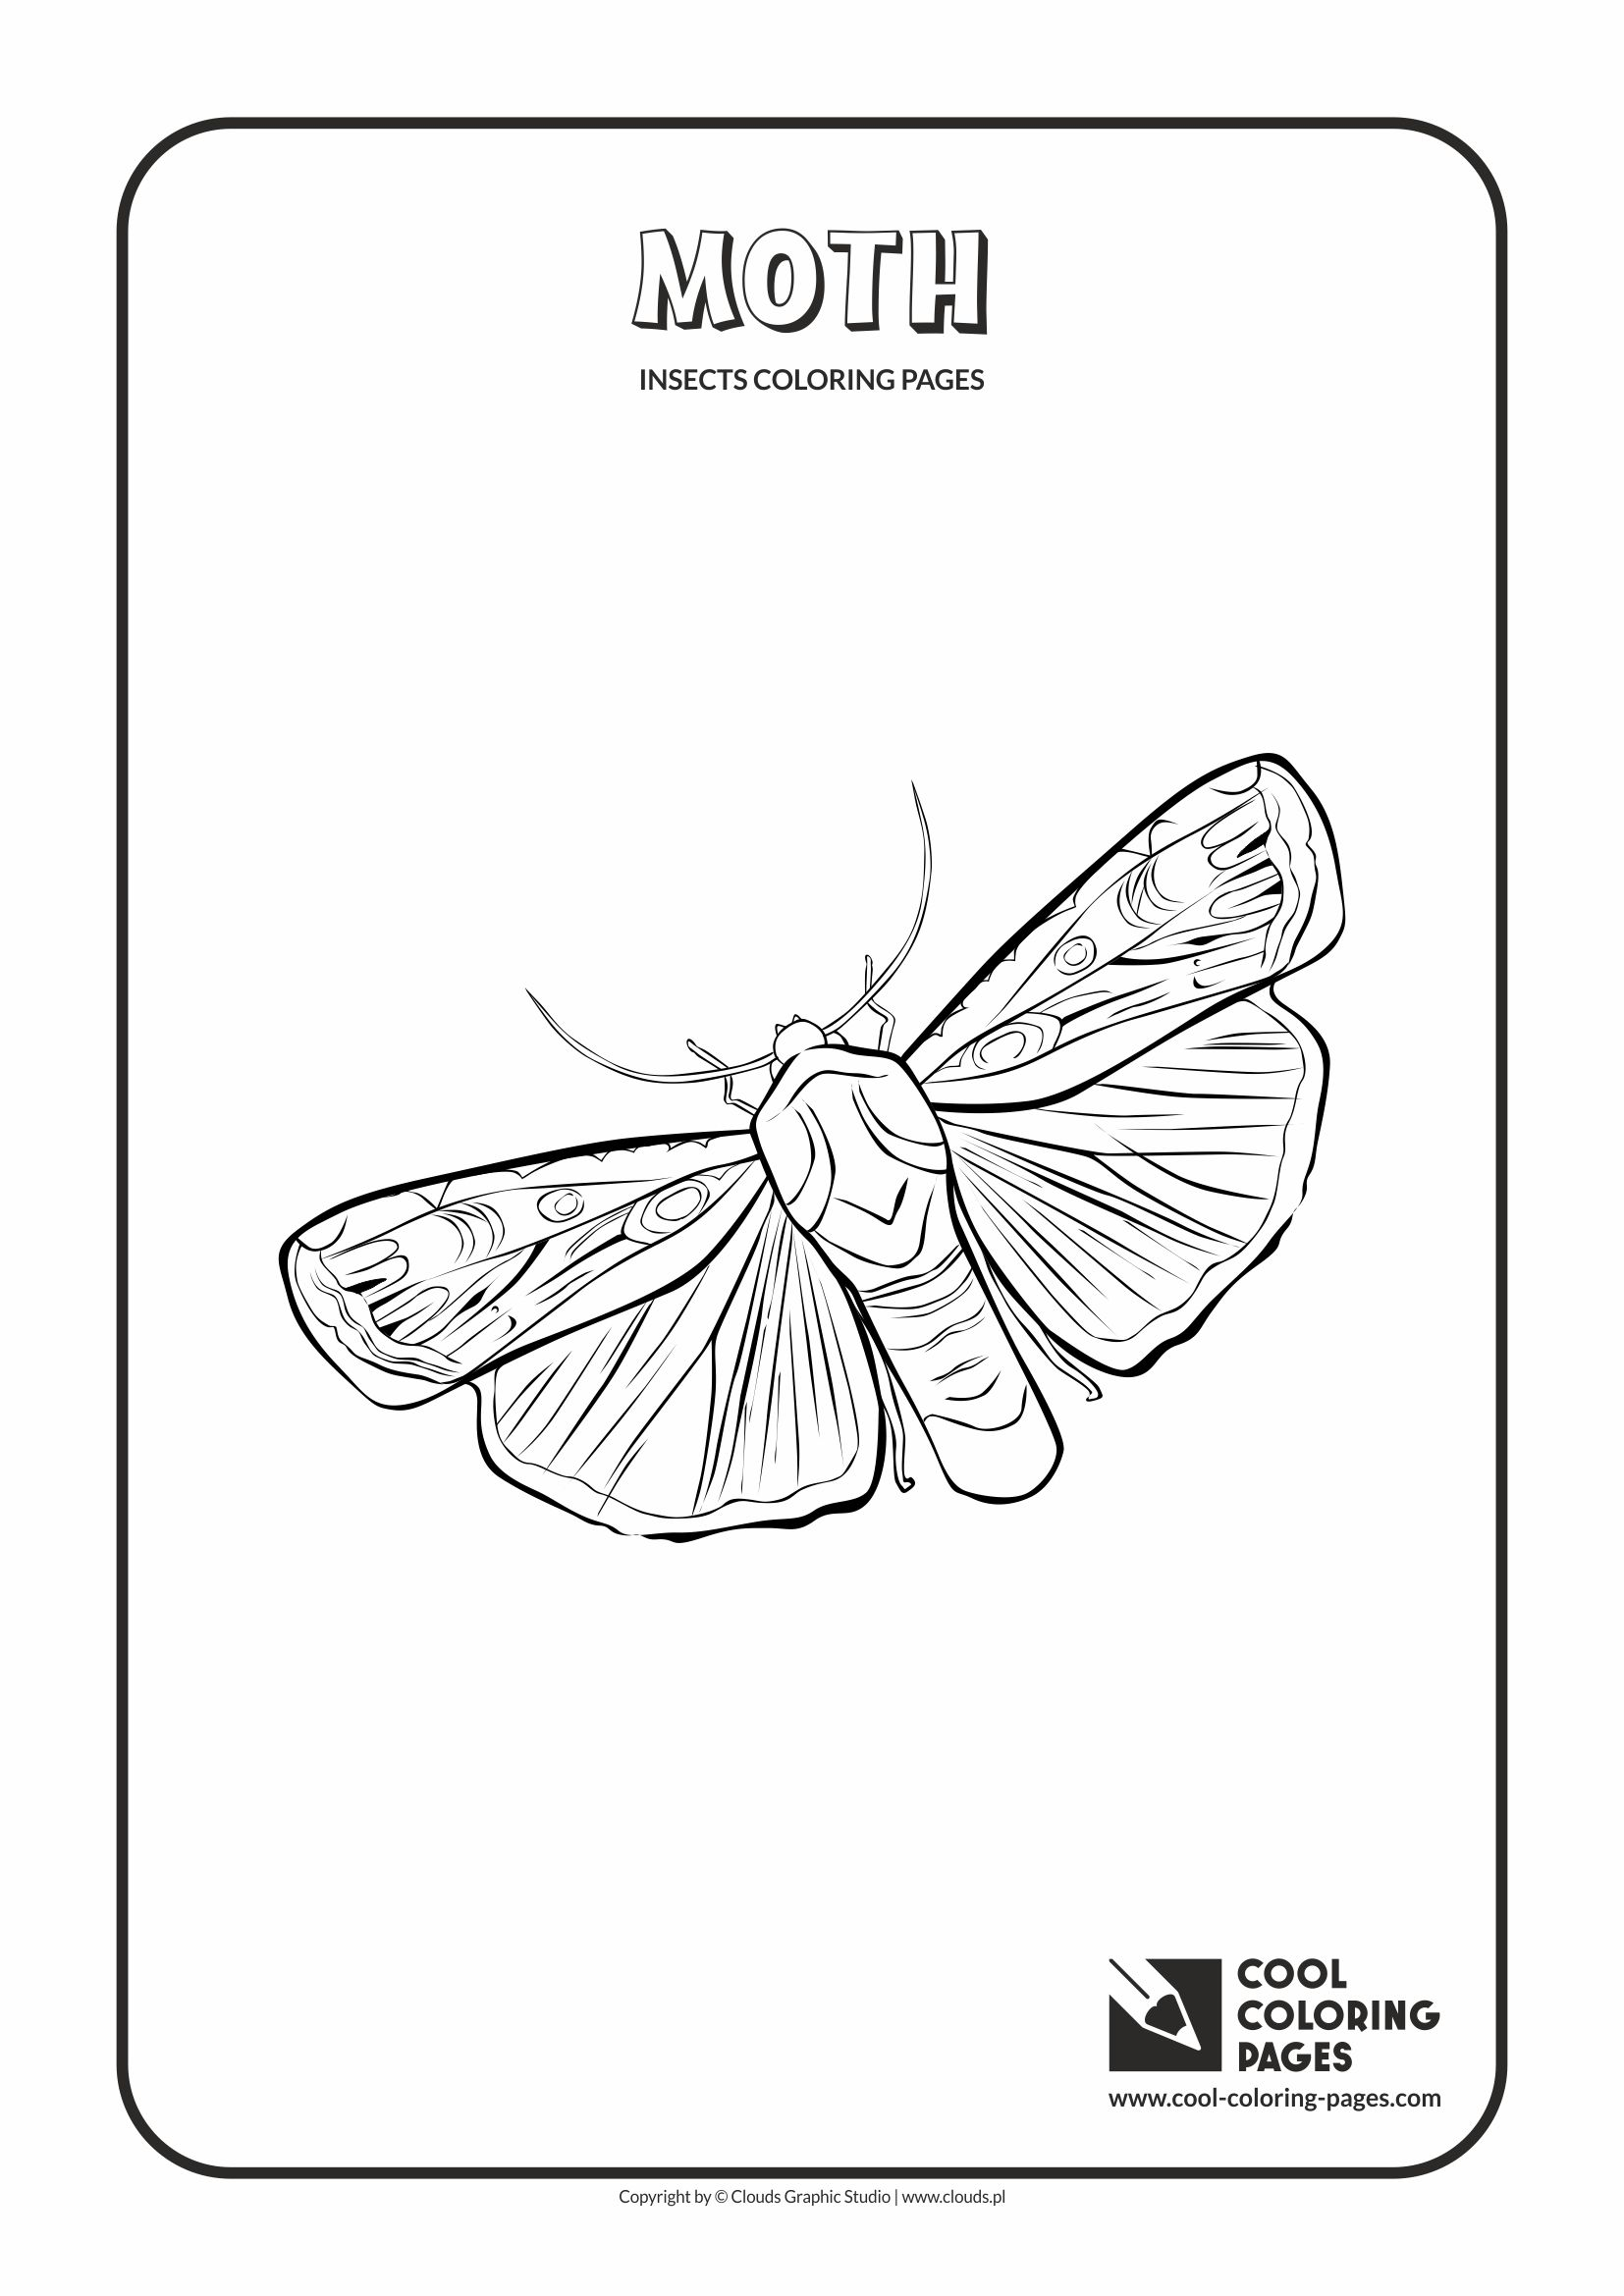 Cool Coloring Pages - Animals / Moth / Coloring page with moth